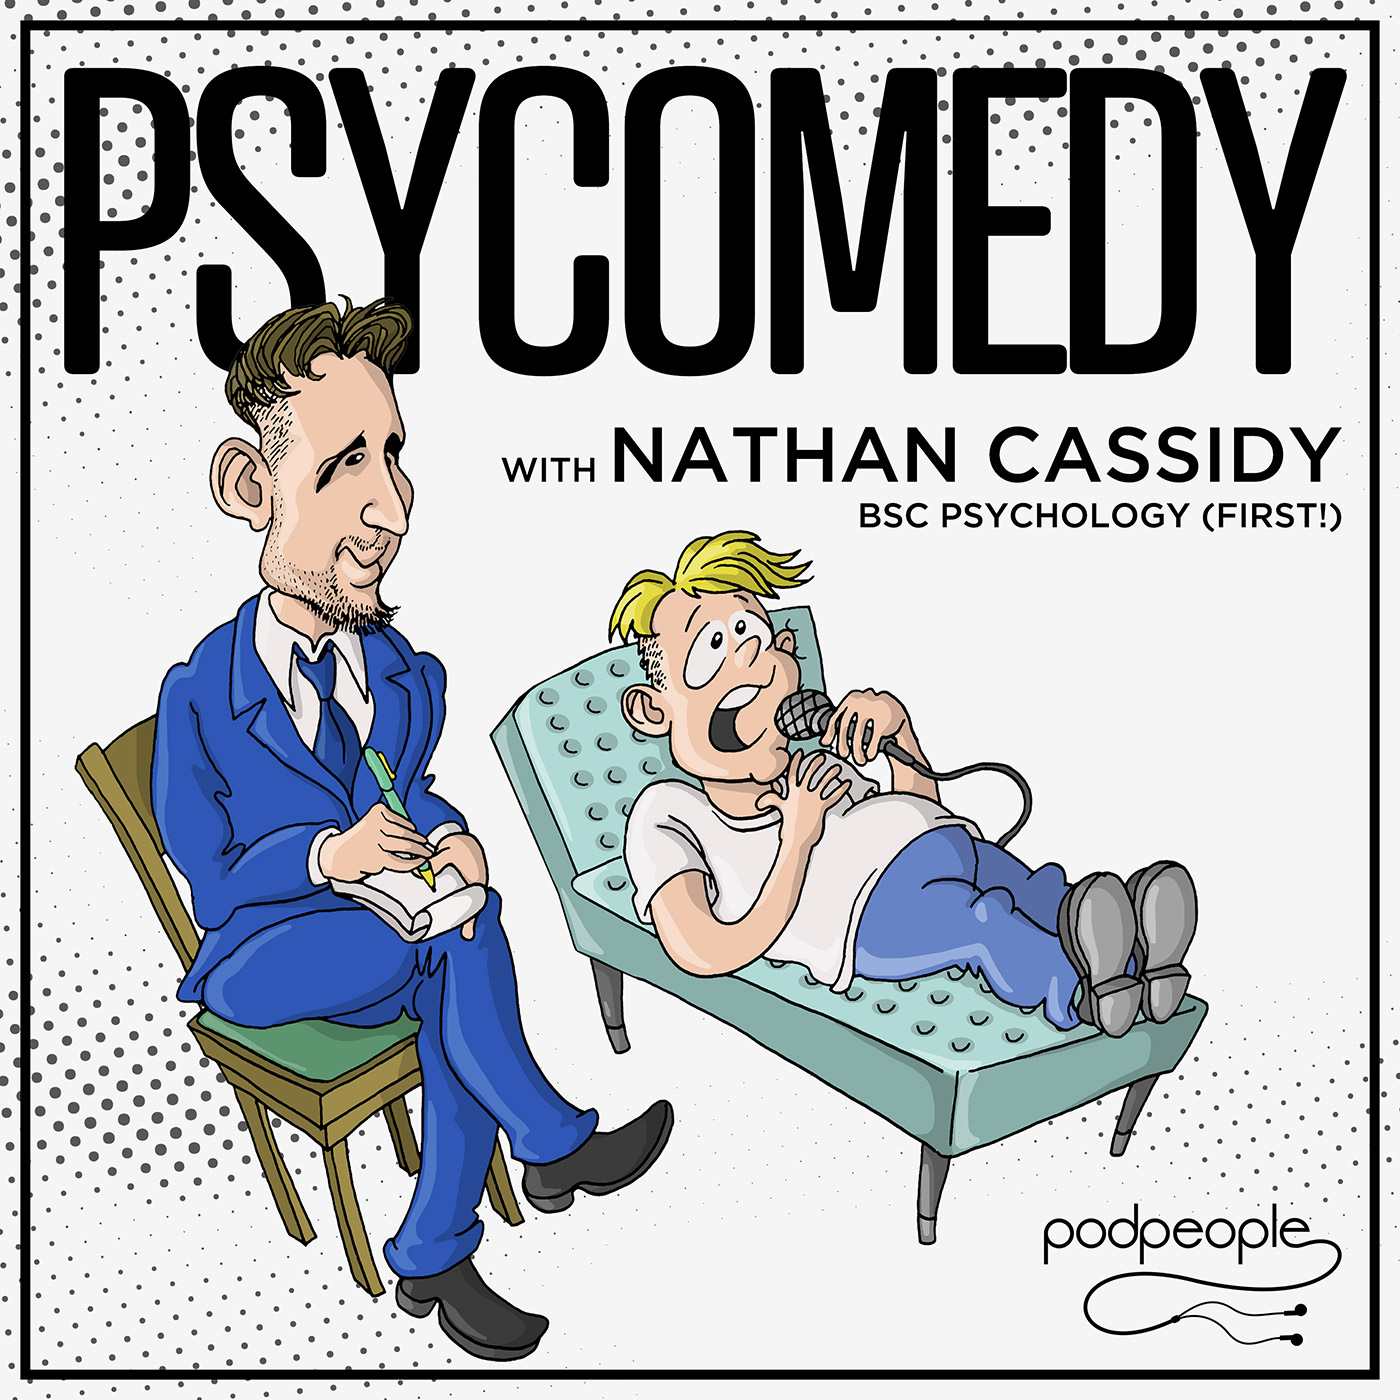 Pyscomedy with Nathan Cassidy